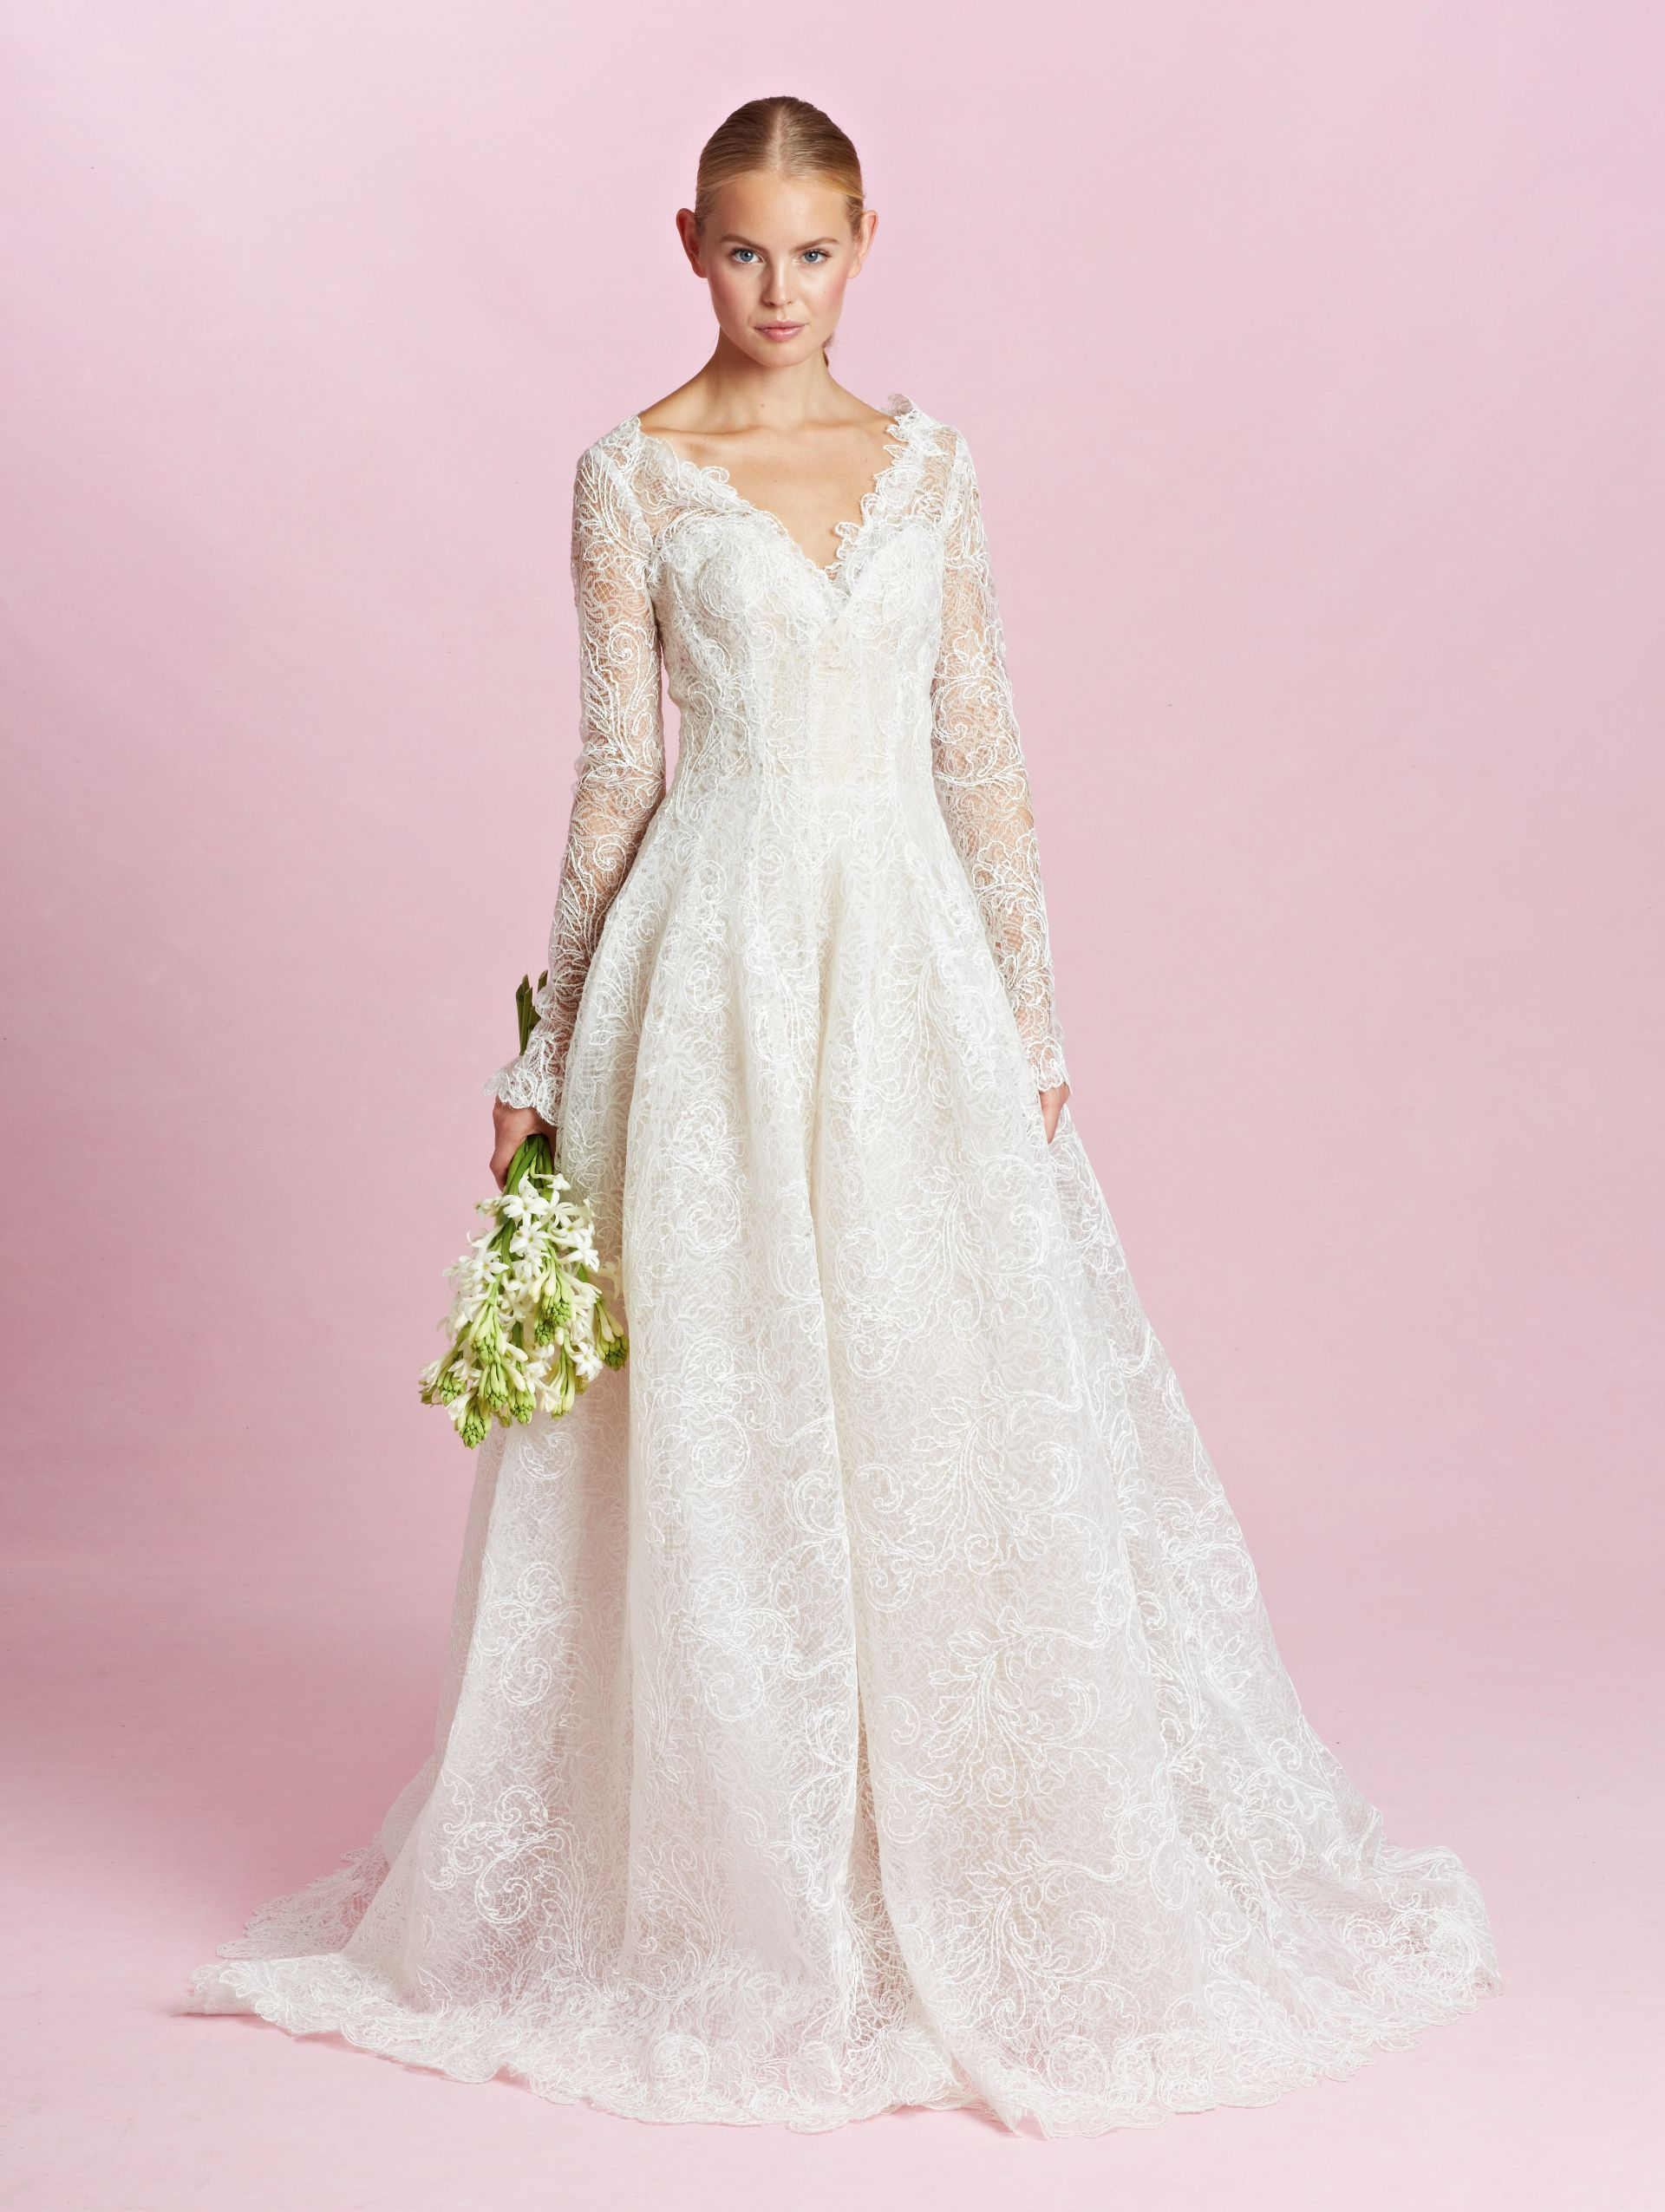 Fall 2015 Bridal Fall 2015 Bridal Pinterest